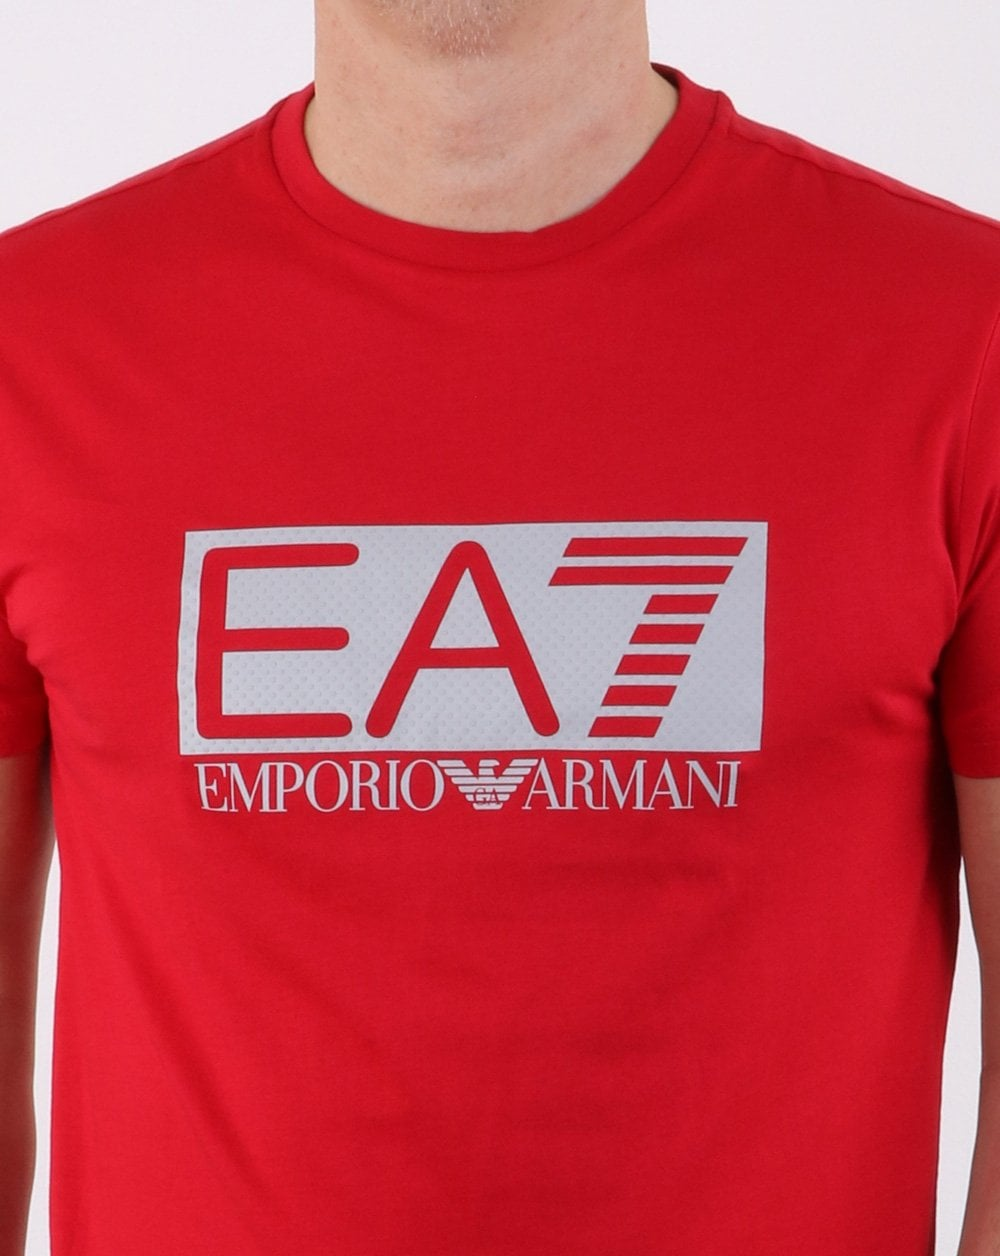 6198862c EA7 Box Logo T Shirt in Red | 80s Casual Classics